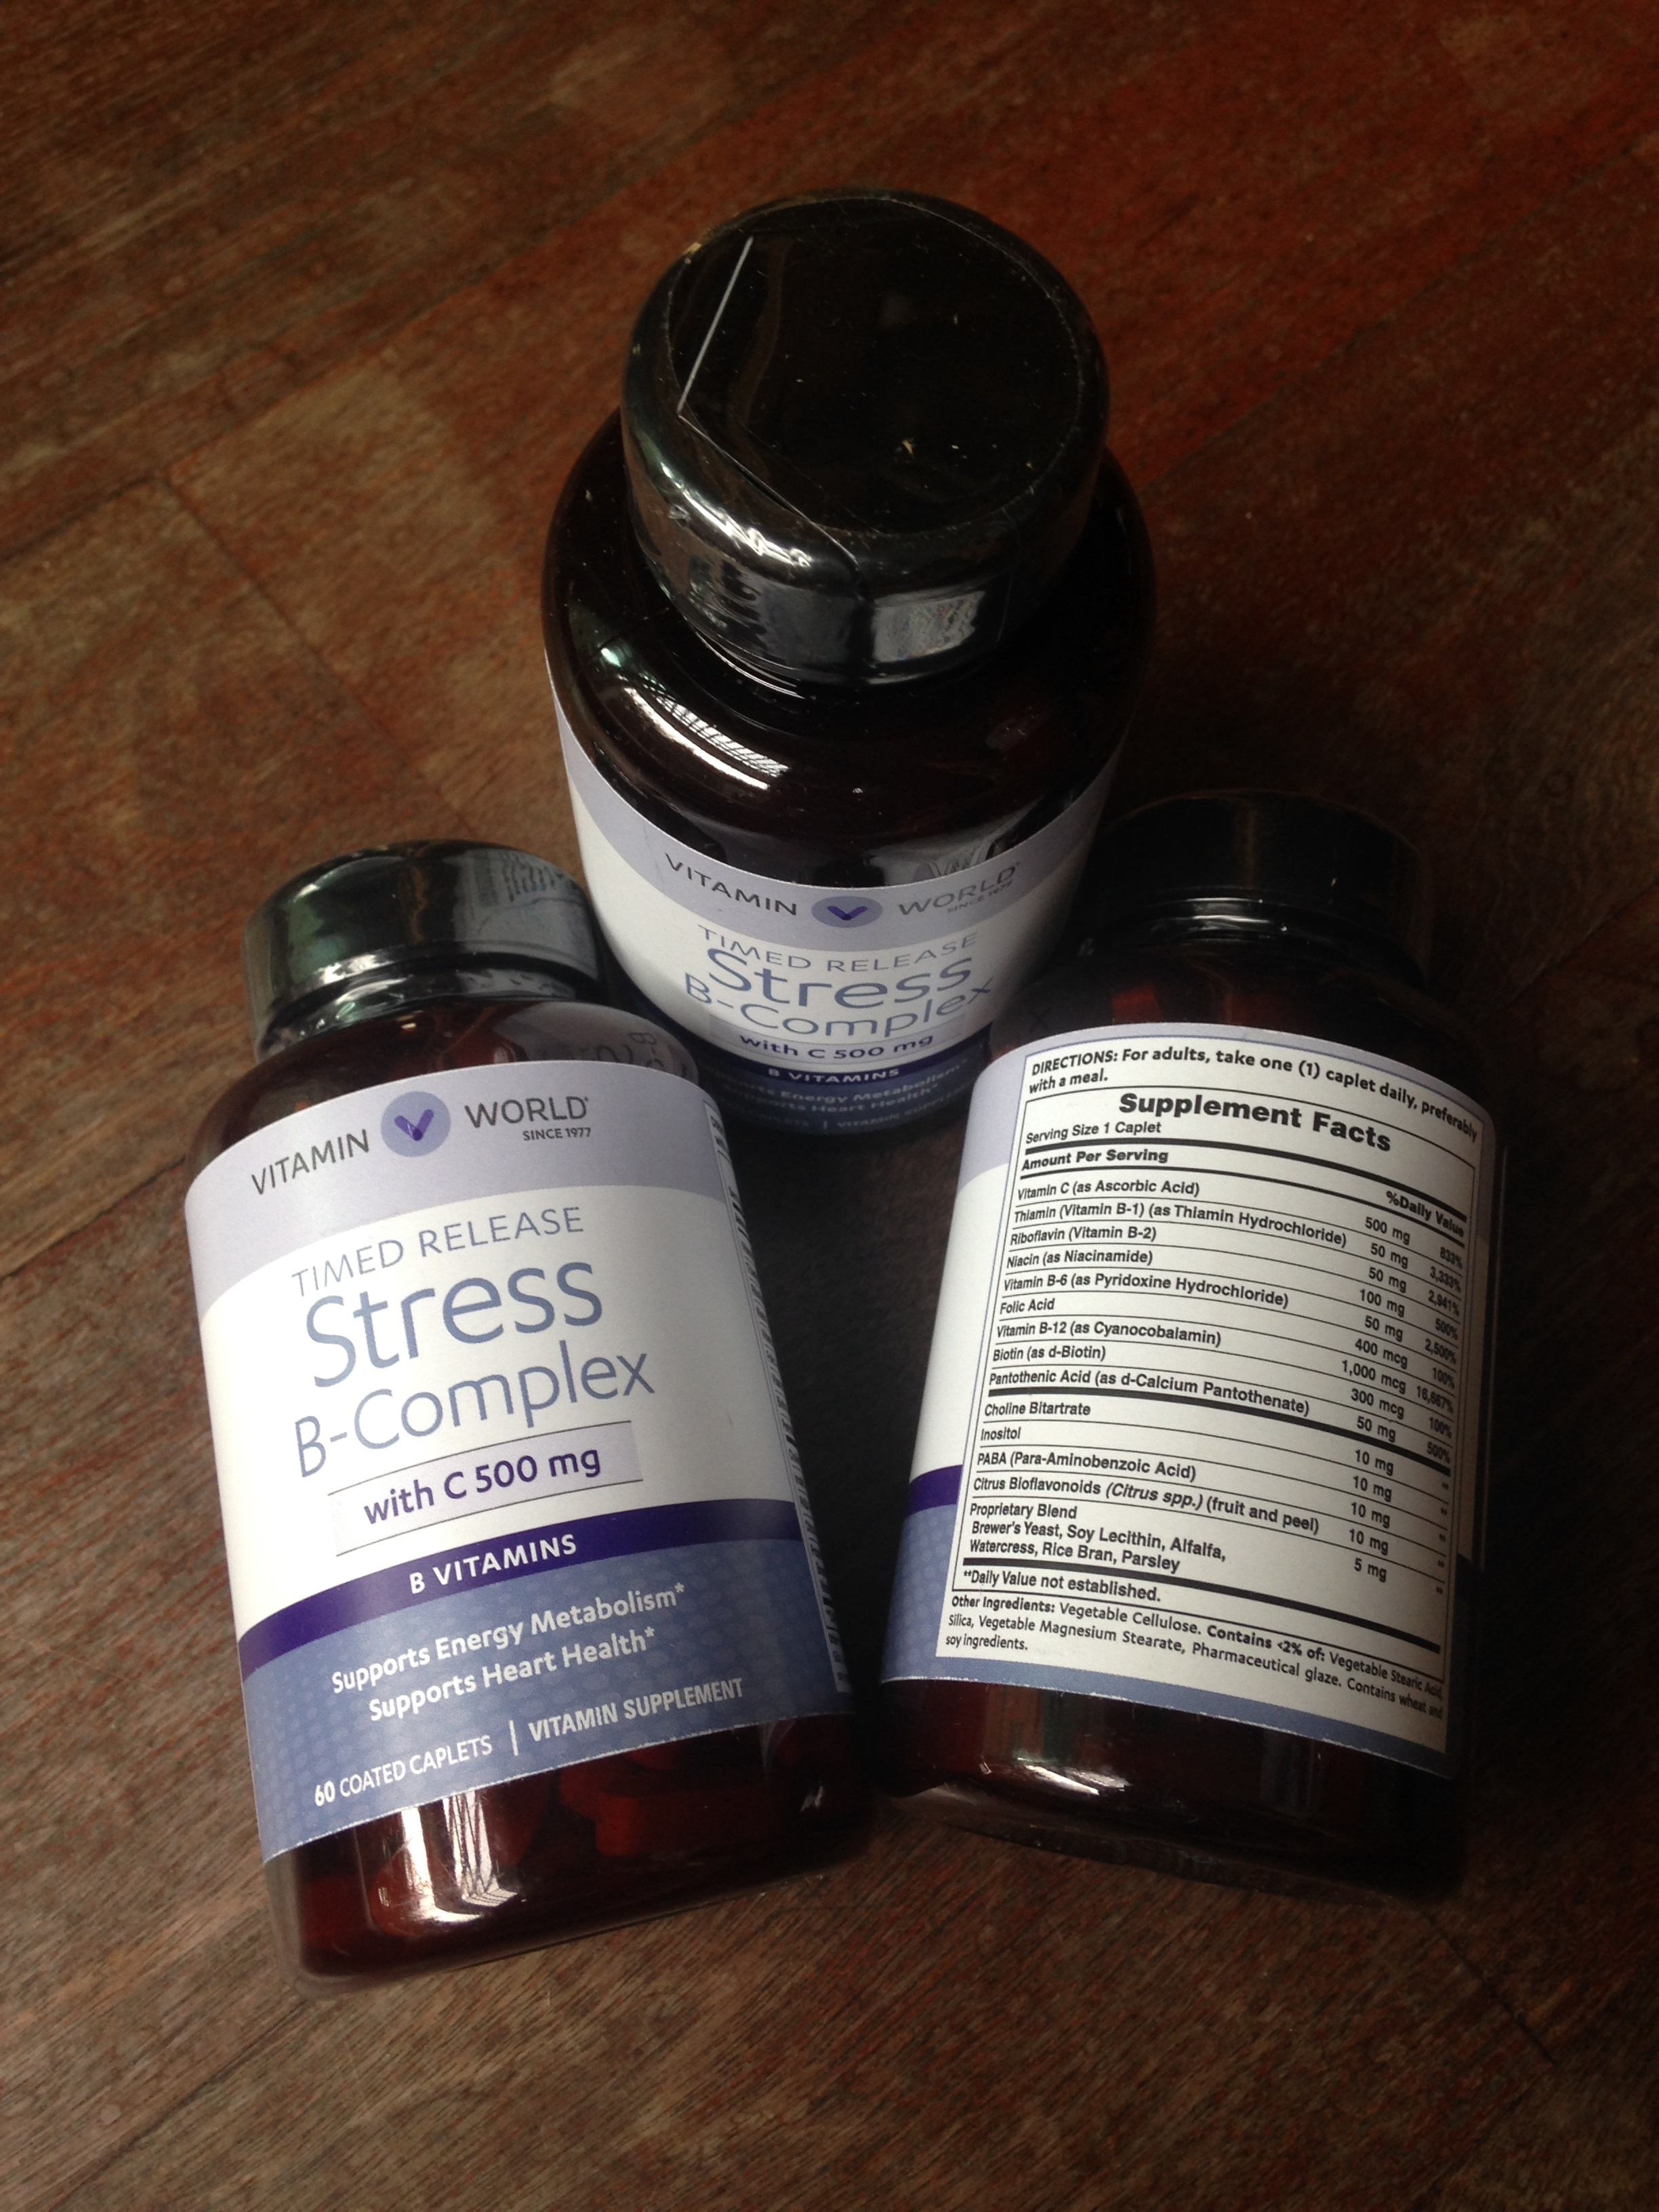 Vitamin World Stress B-Complex Time release with C 500 mg 60 เม็ด